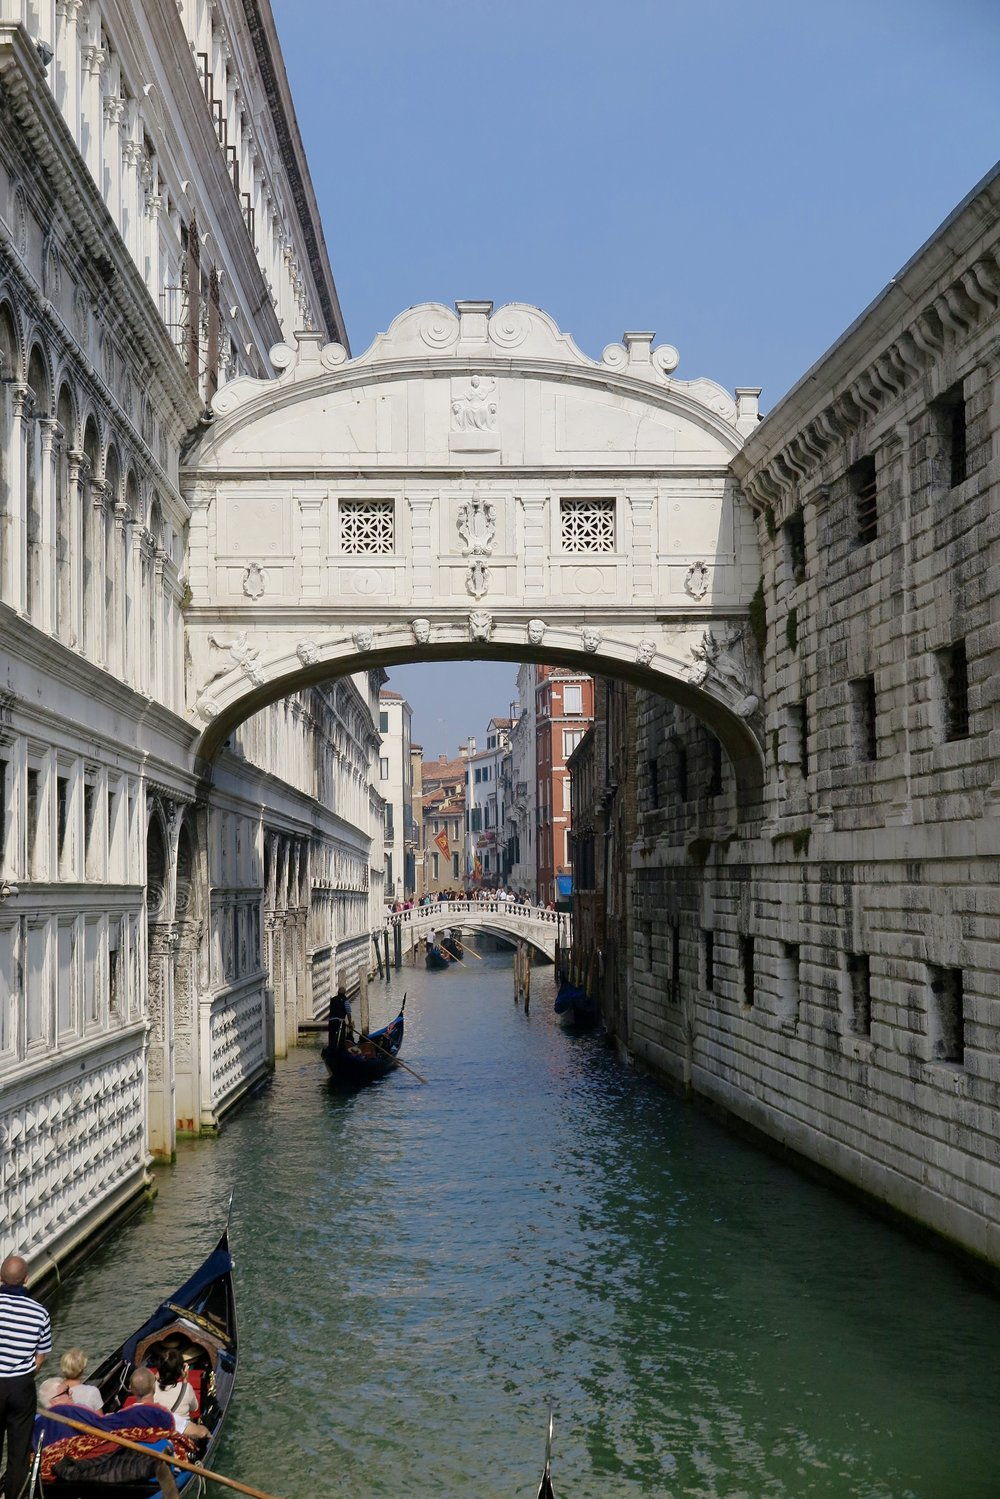 Bridge of Sighs, Venice, Italy, Samantha McNeil